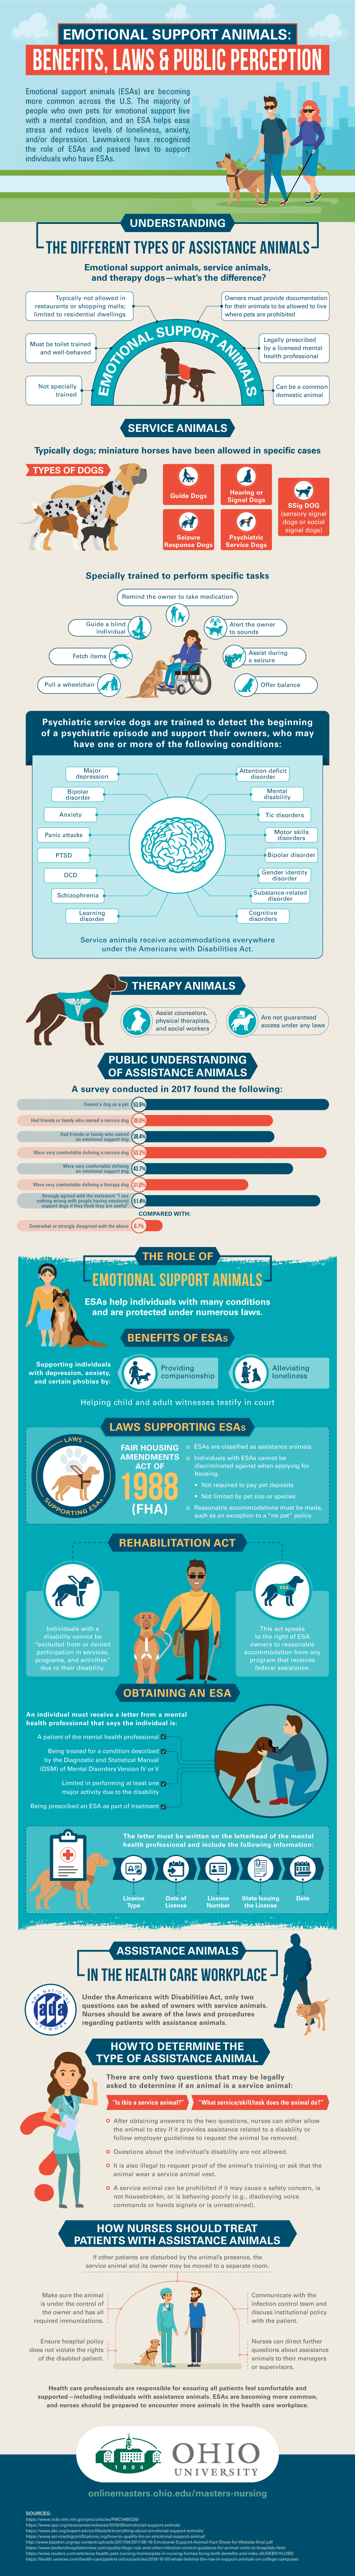 How nurses can manage the presence of assistance animals and ESAs.